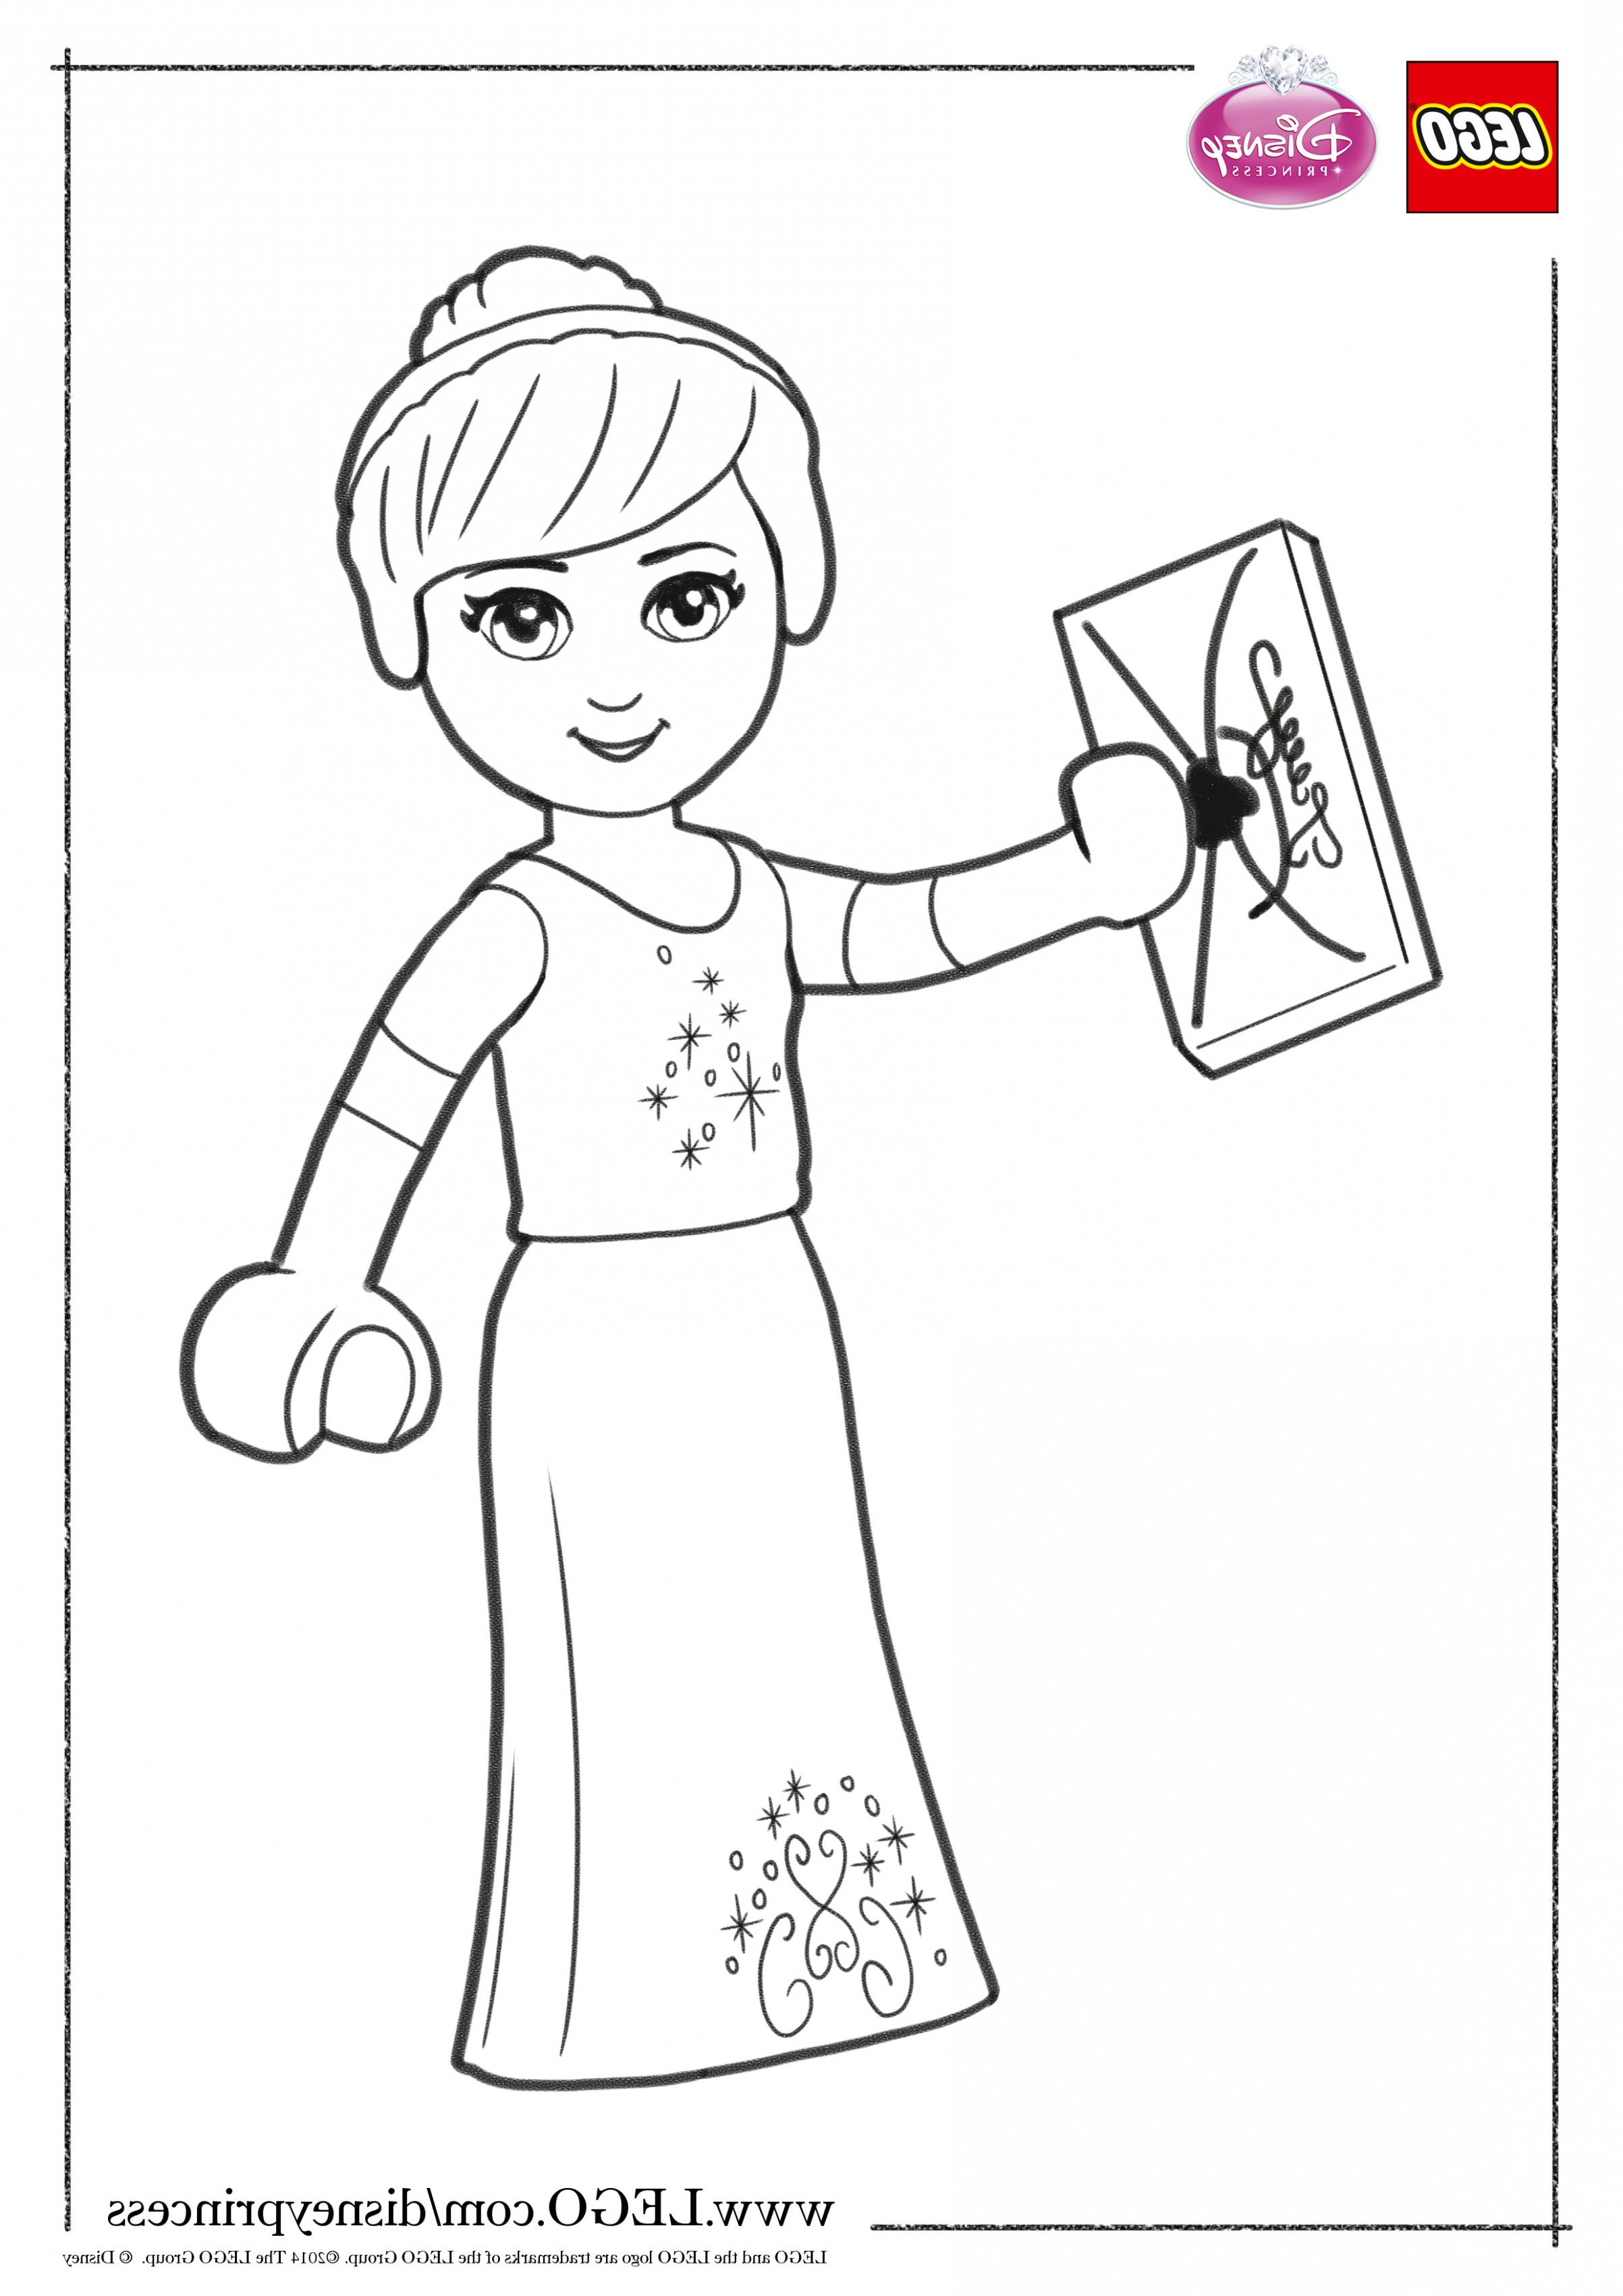 Ten Unbelievable Facts About Lego Disney Princess Coloring Pages Coloring Princess Coloring Pages Disney Princess Colors Princess Coloring